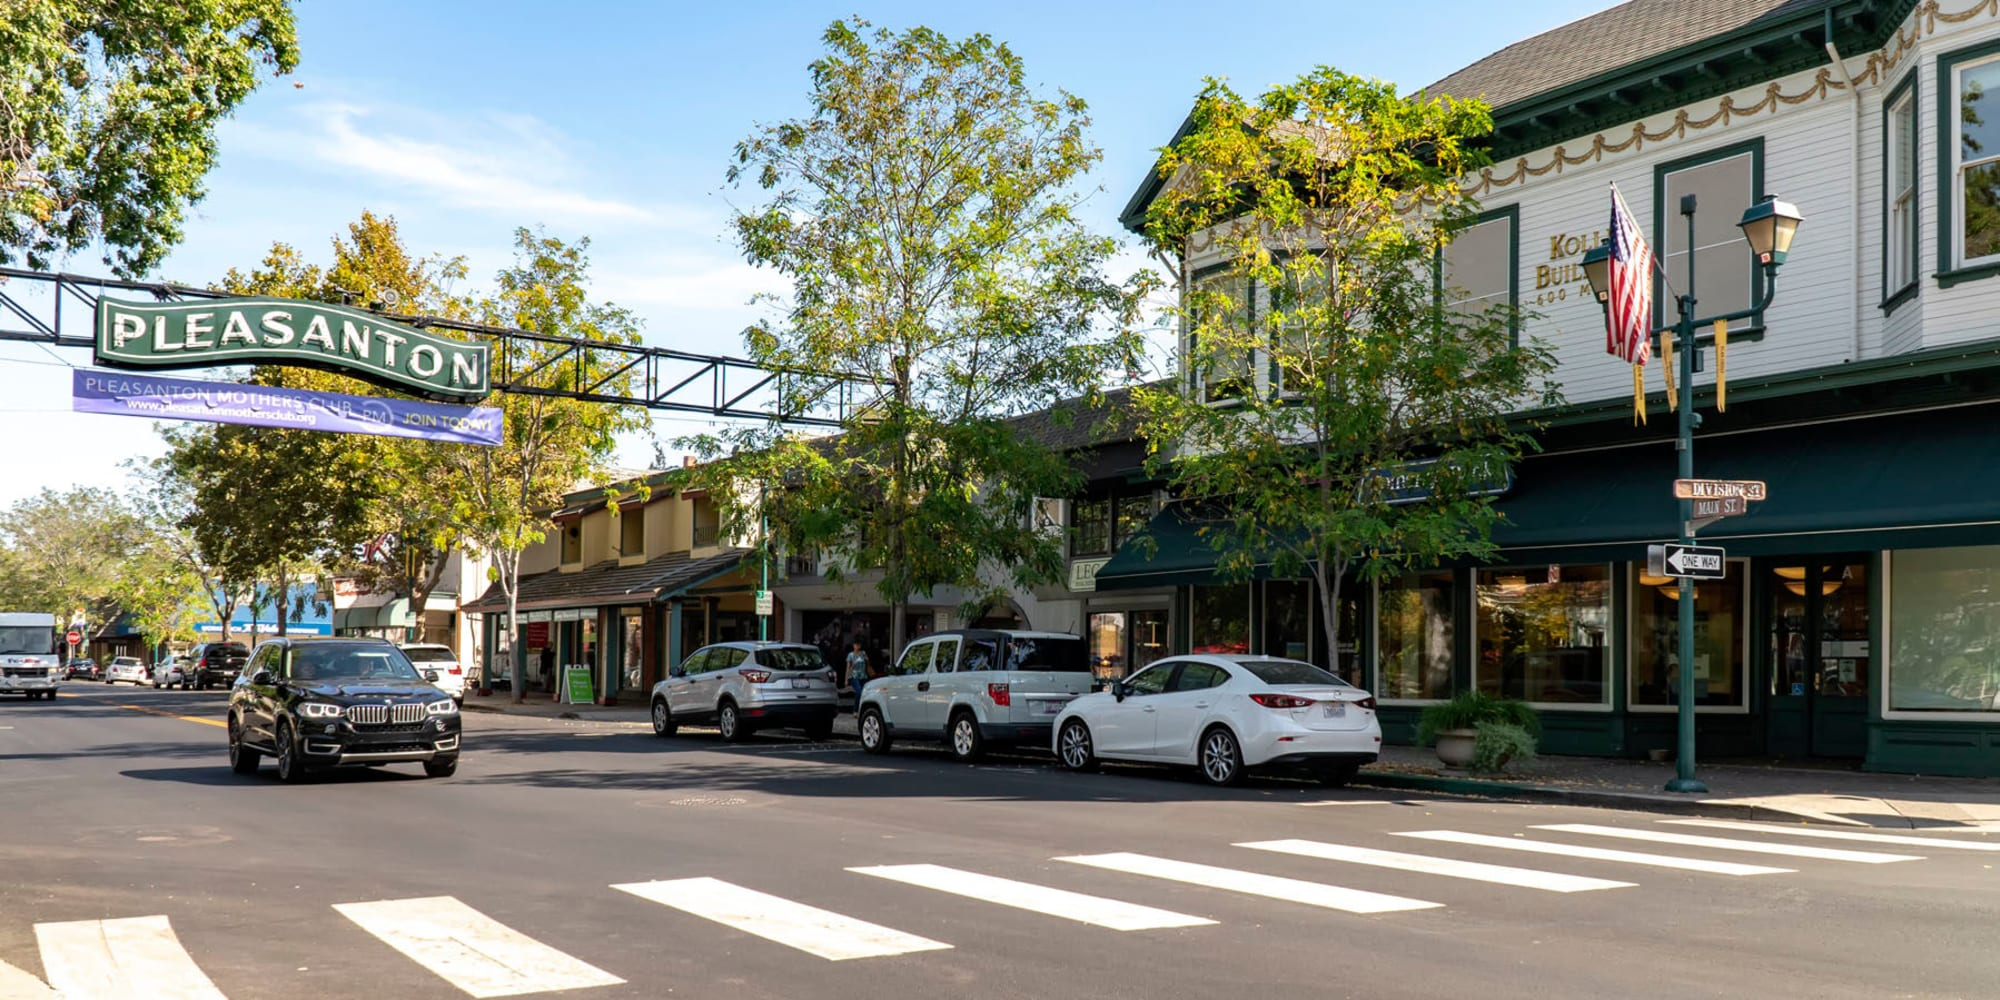 Downtown Pleasanton on another sunny morning near Pleasanton Heights in Pleasanton, California